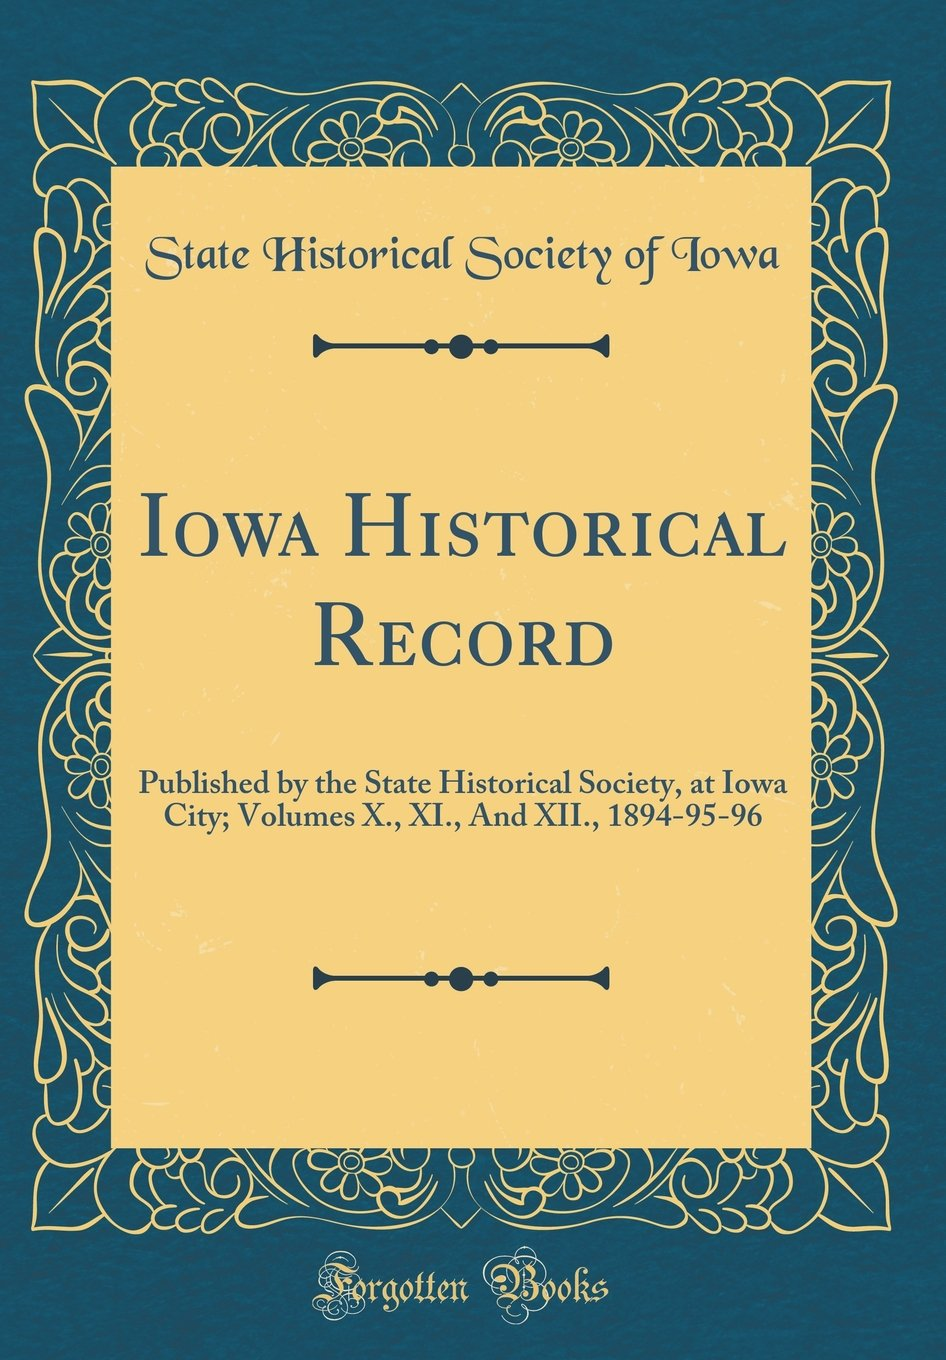 Iowa Historical Record: Published by the State Historical Society, at Iowa City; Volumes X., XI., and XII., 1894-95-96 (Classic Reprint) pdf epub